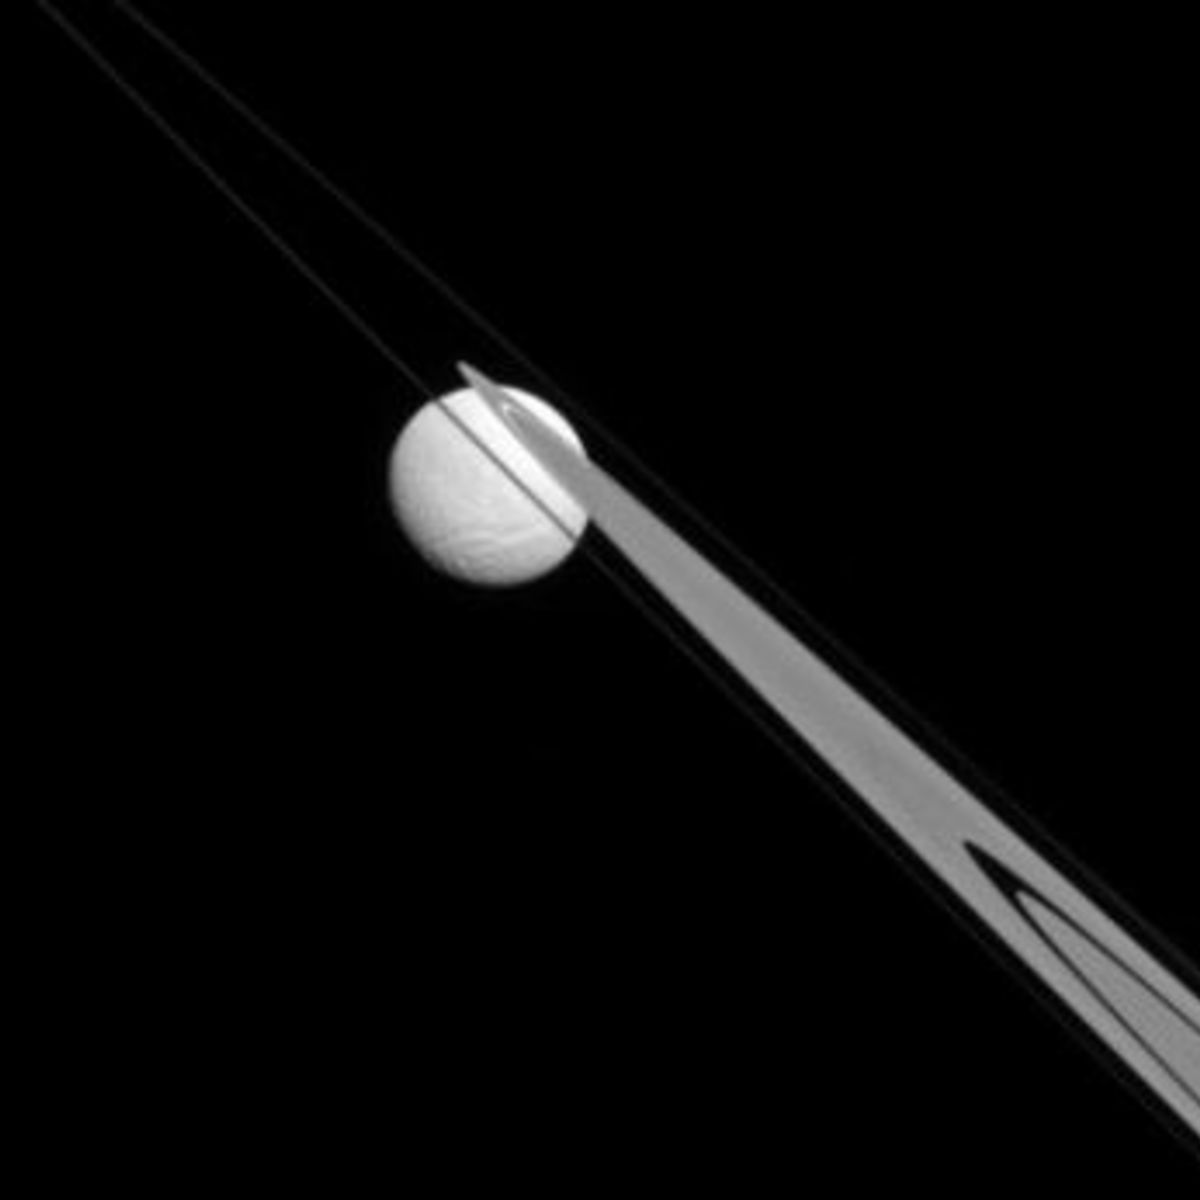 cassini_tethys_rings.jpg.CROP.rectangle-large.jpg